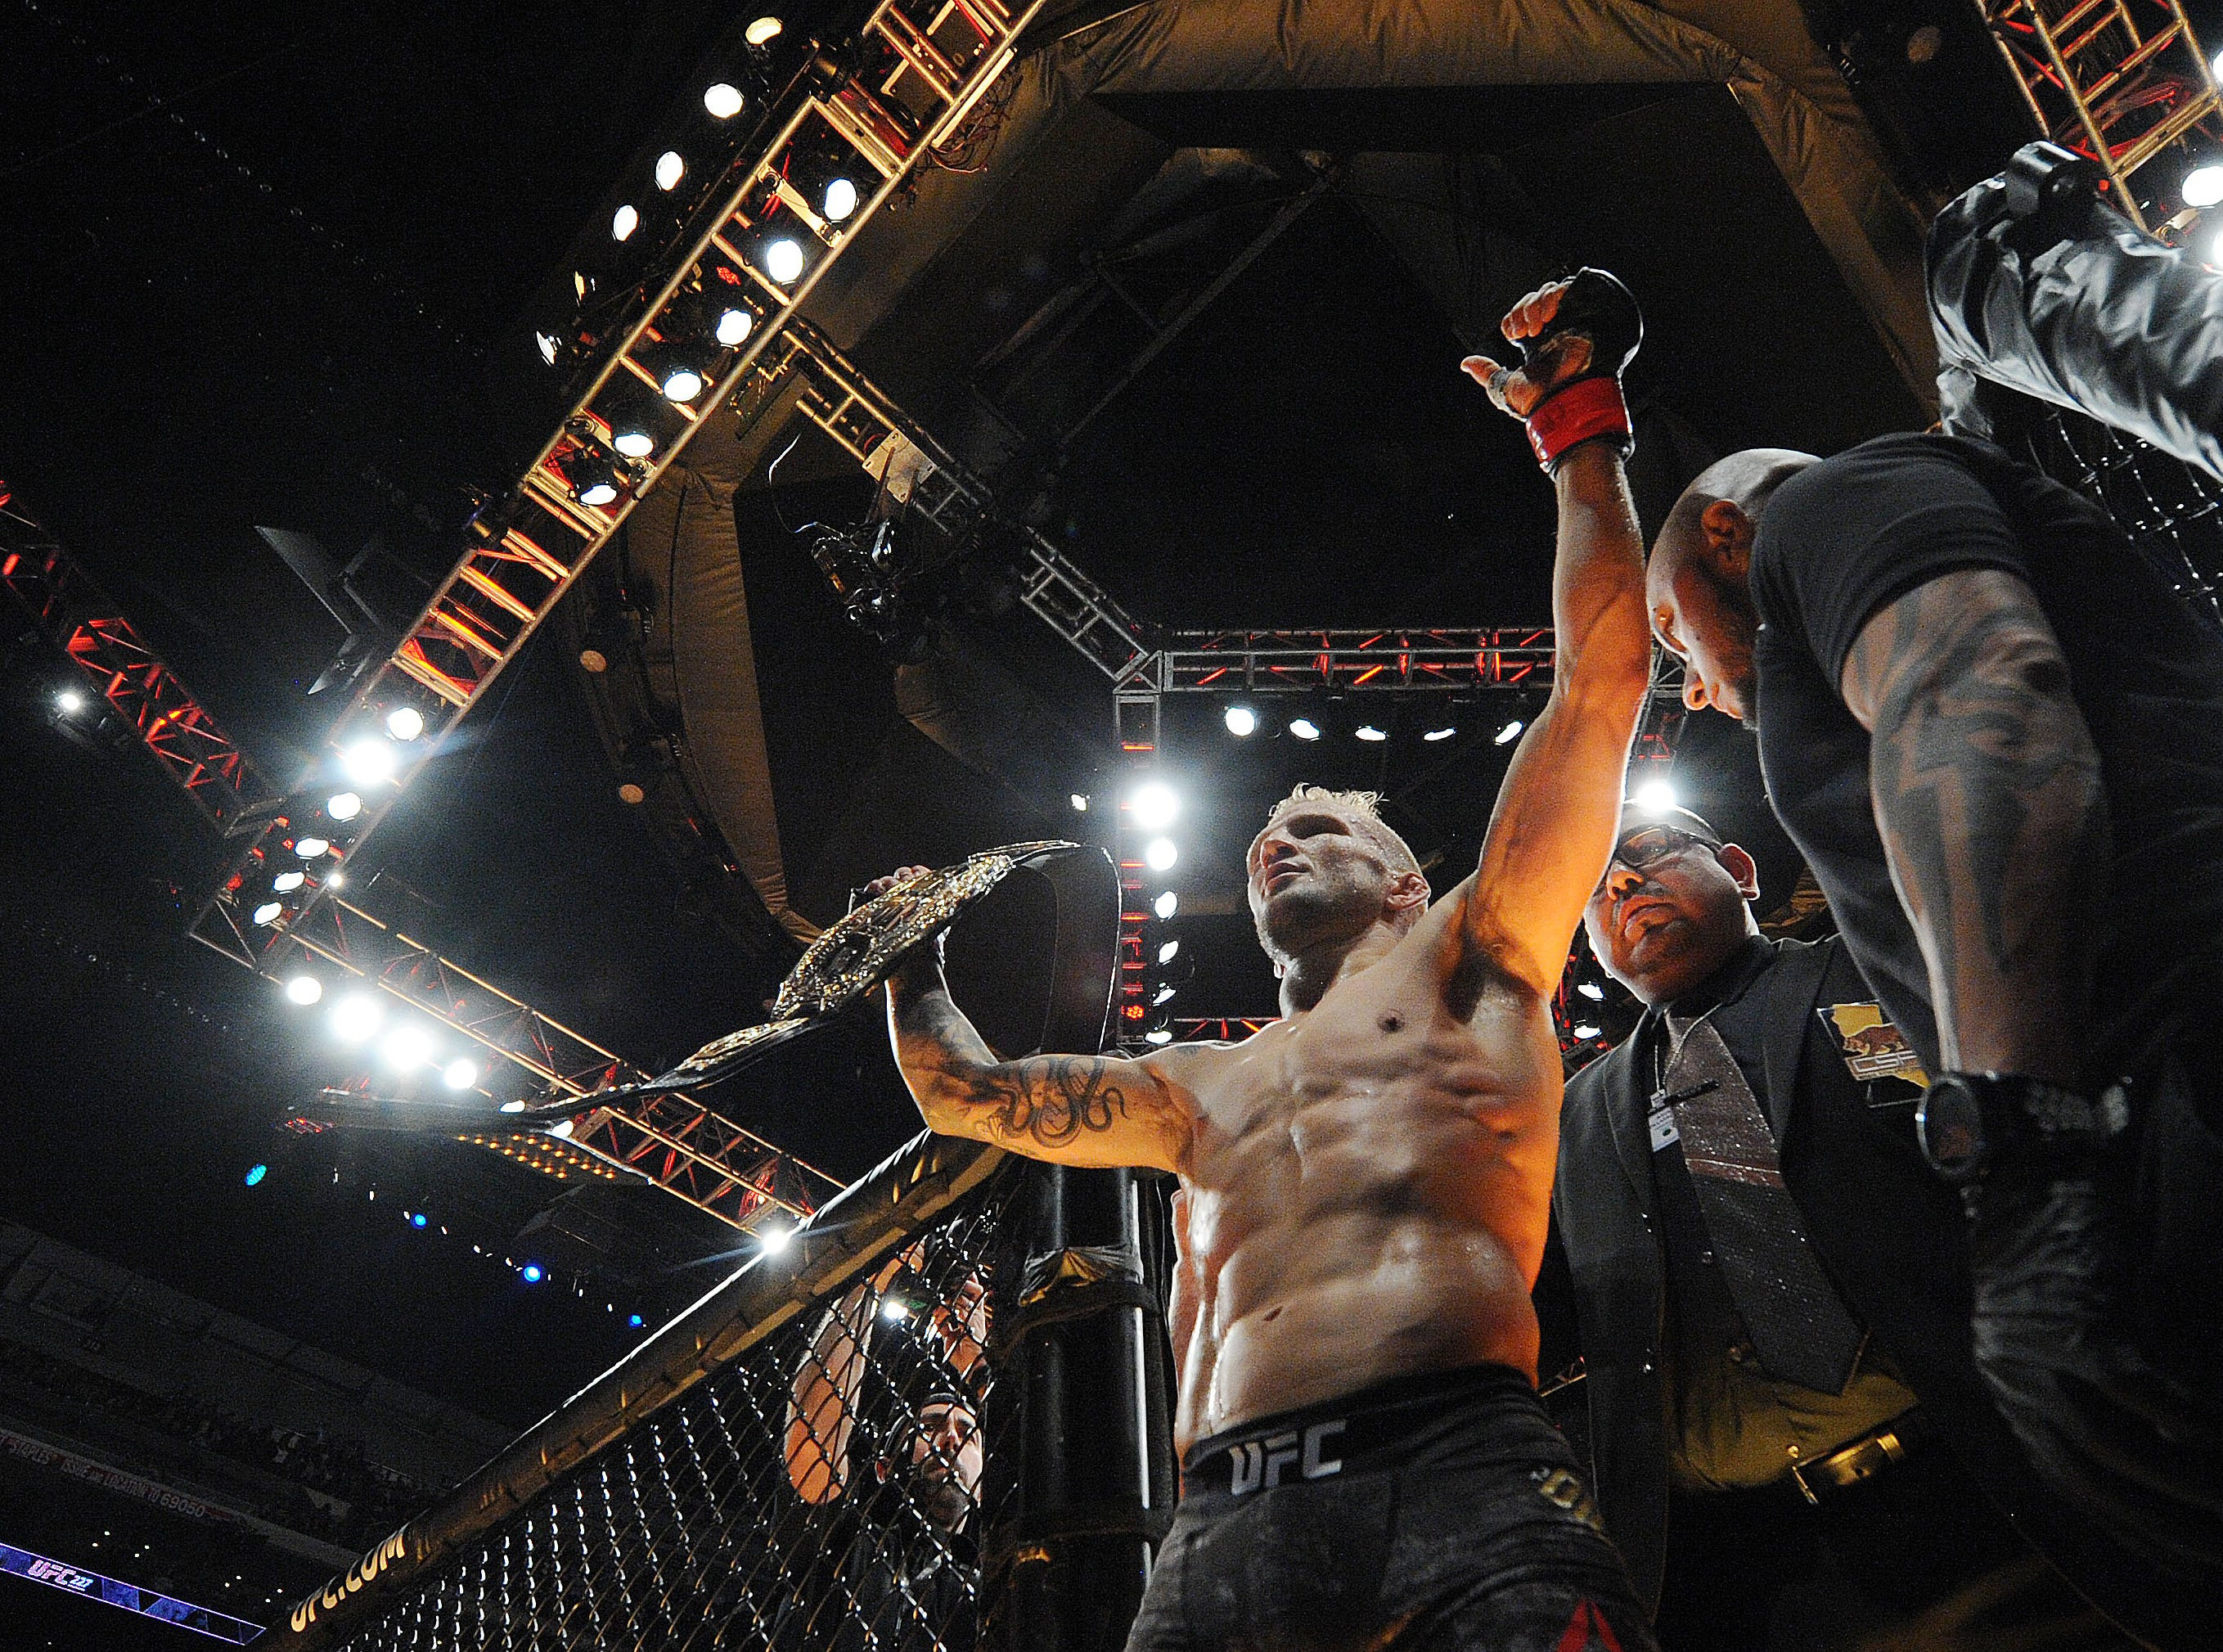 TJ Dillashaw celebrates his championship victory against Cody Garbrandt during UFC 227 at Staples Center.